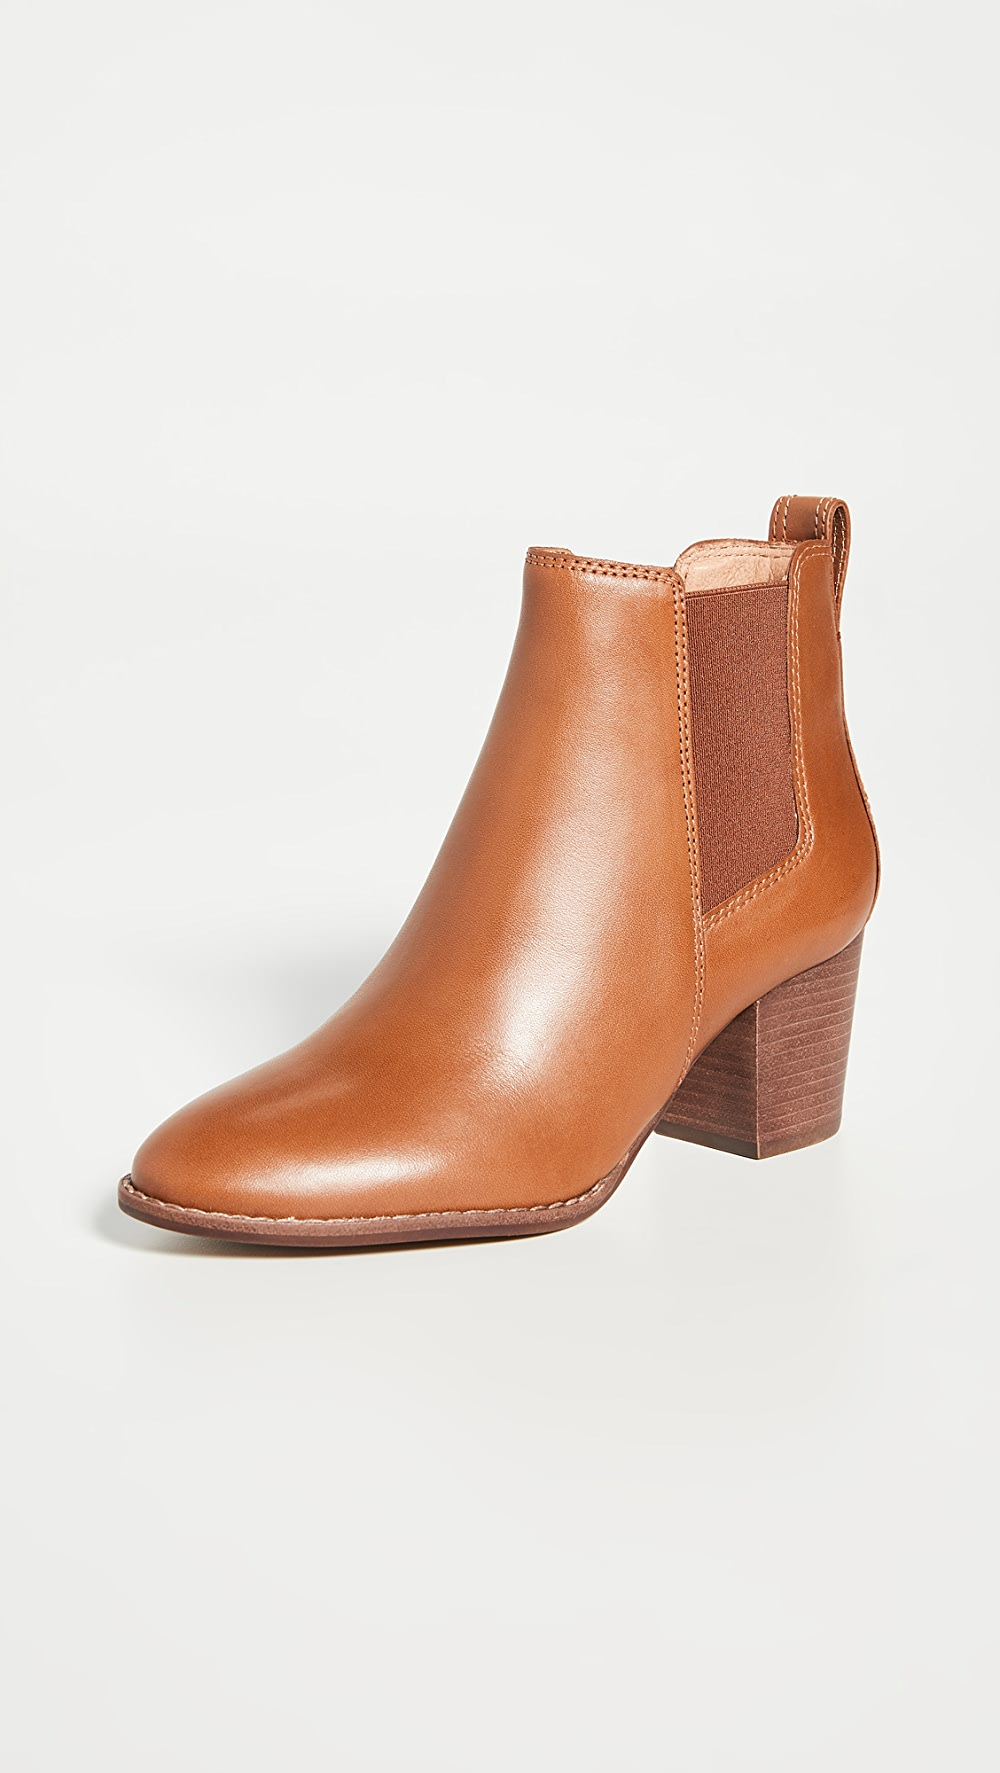 Able Madewell - The Baine Block Heel Booties To Have A Long Historical Standing